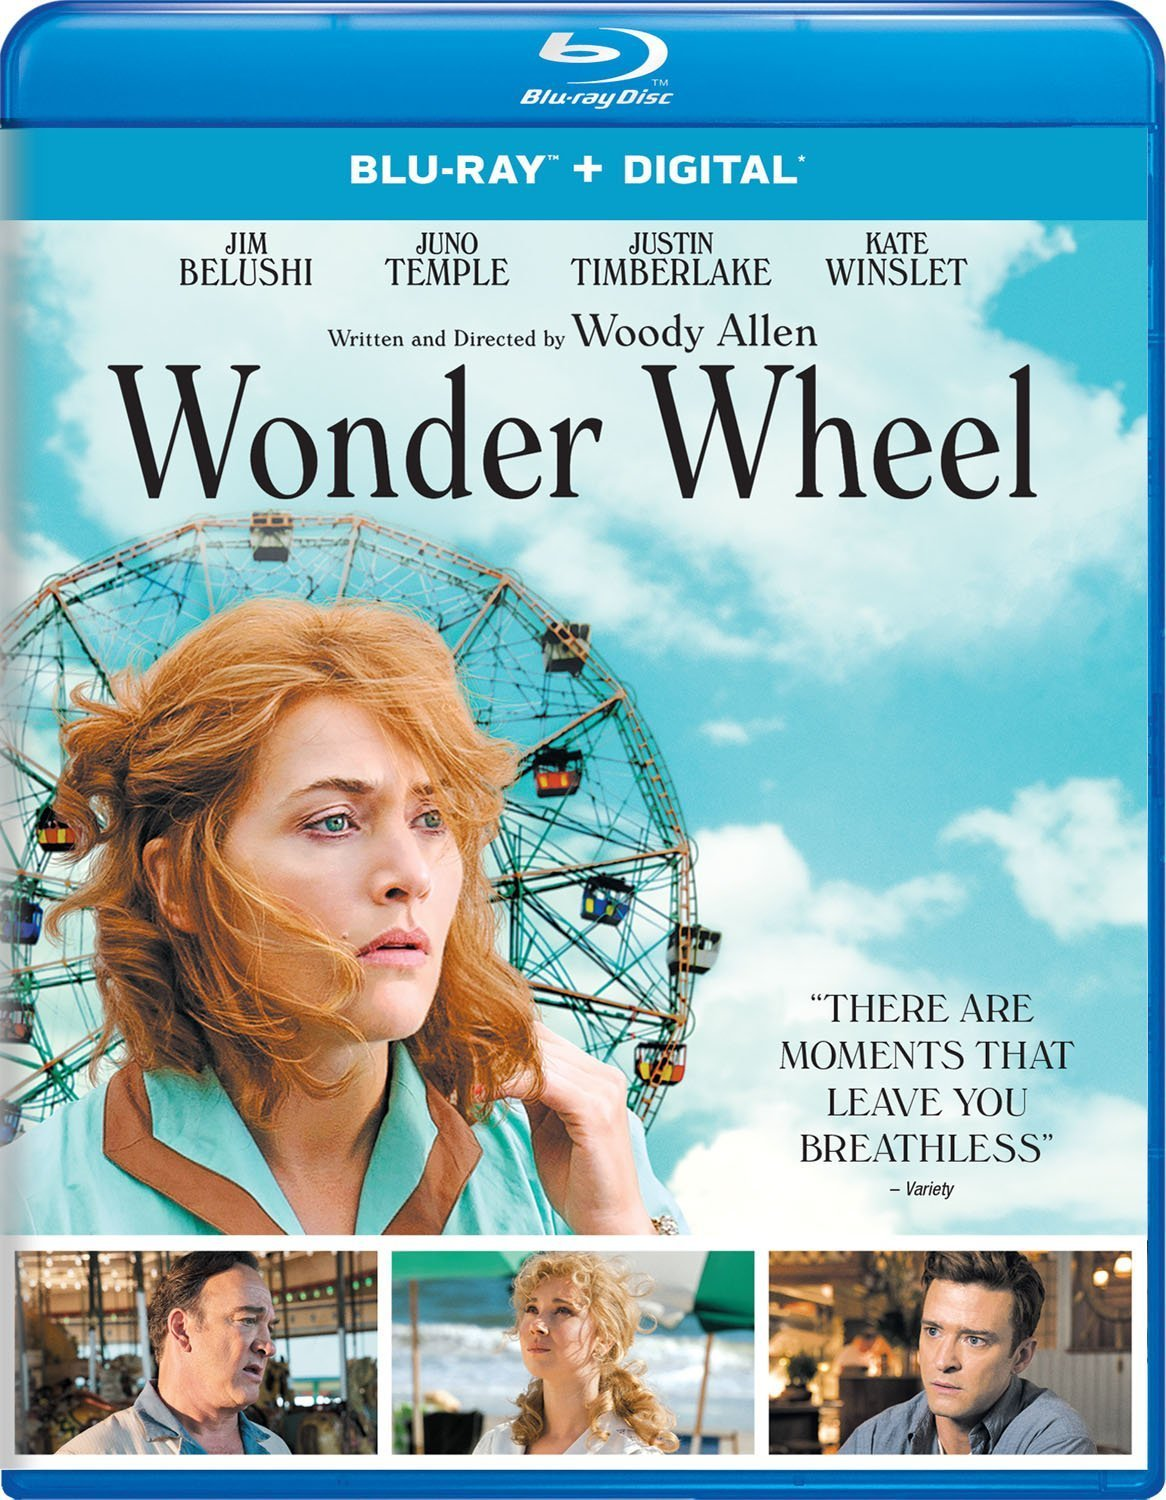 Wonder Wheel (2017) Blu-ray